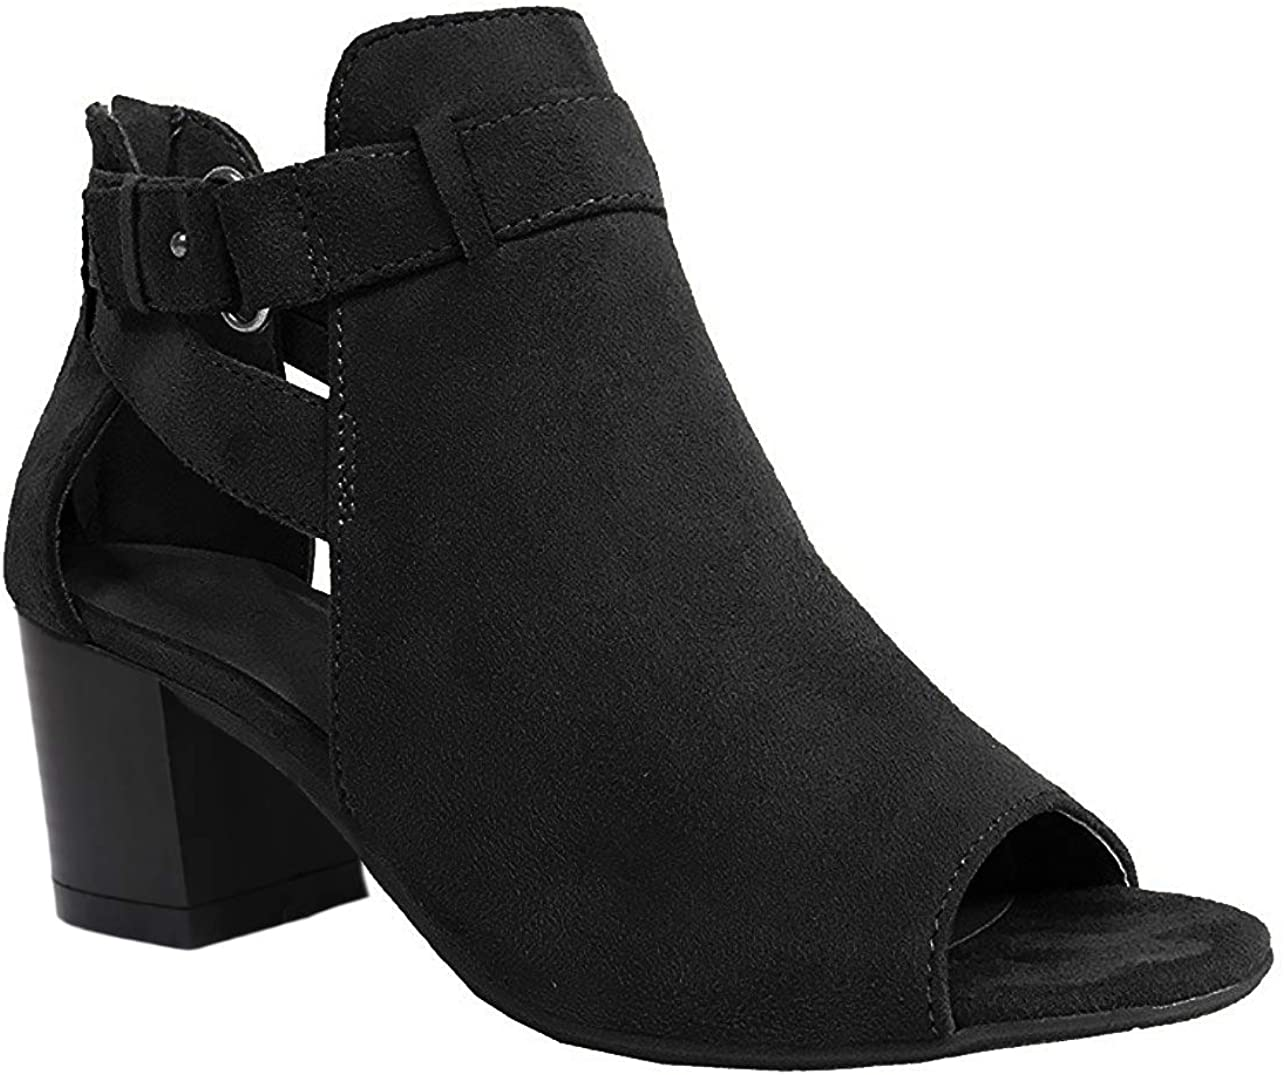 Womens Cutout Block Chunky Low Stacked Heel Sandals Open Toe Booties Fall Ankle Boots Black